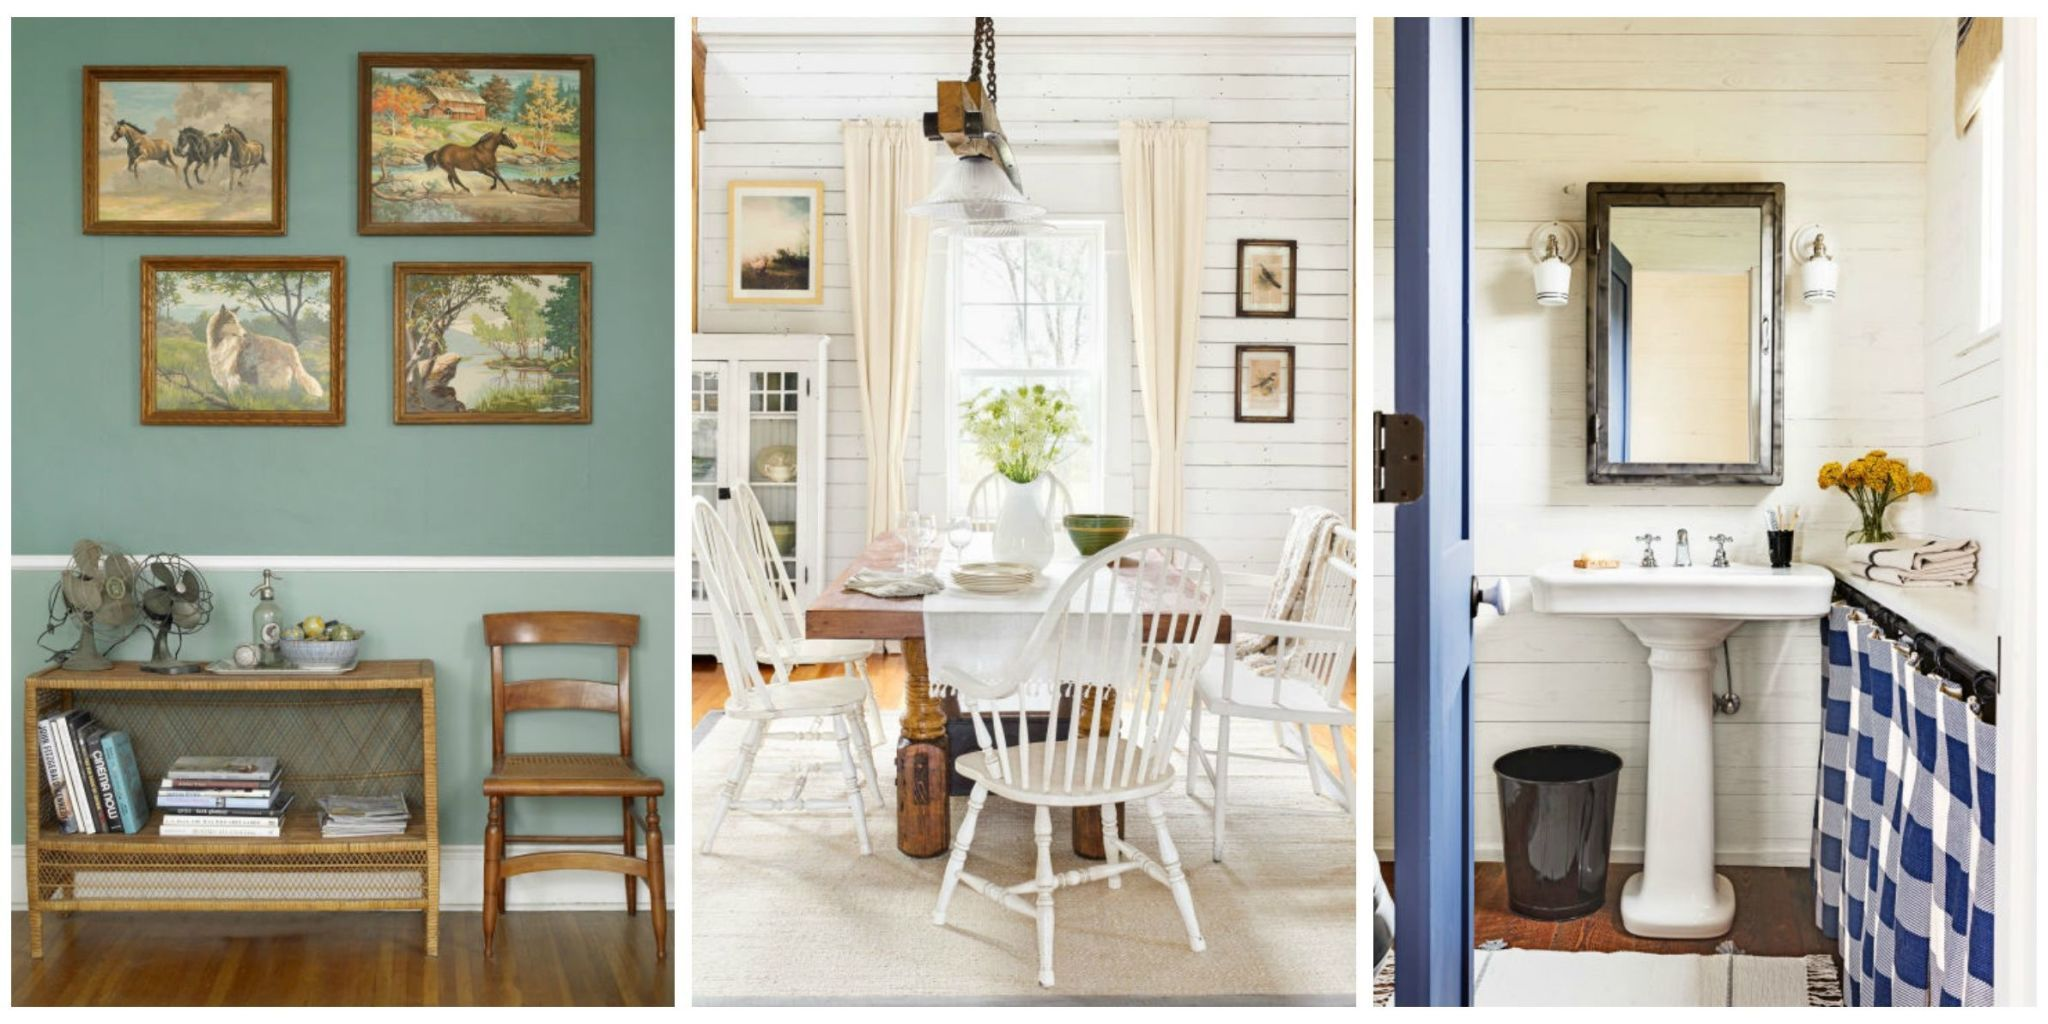 Bon Small Decorating Projects Can Freshen Up Your Home And Be Inexpensive. Try  One Or Two Of These Budget Friendly Fixes For An Instant Update!